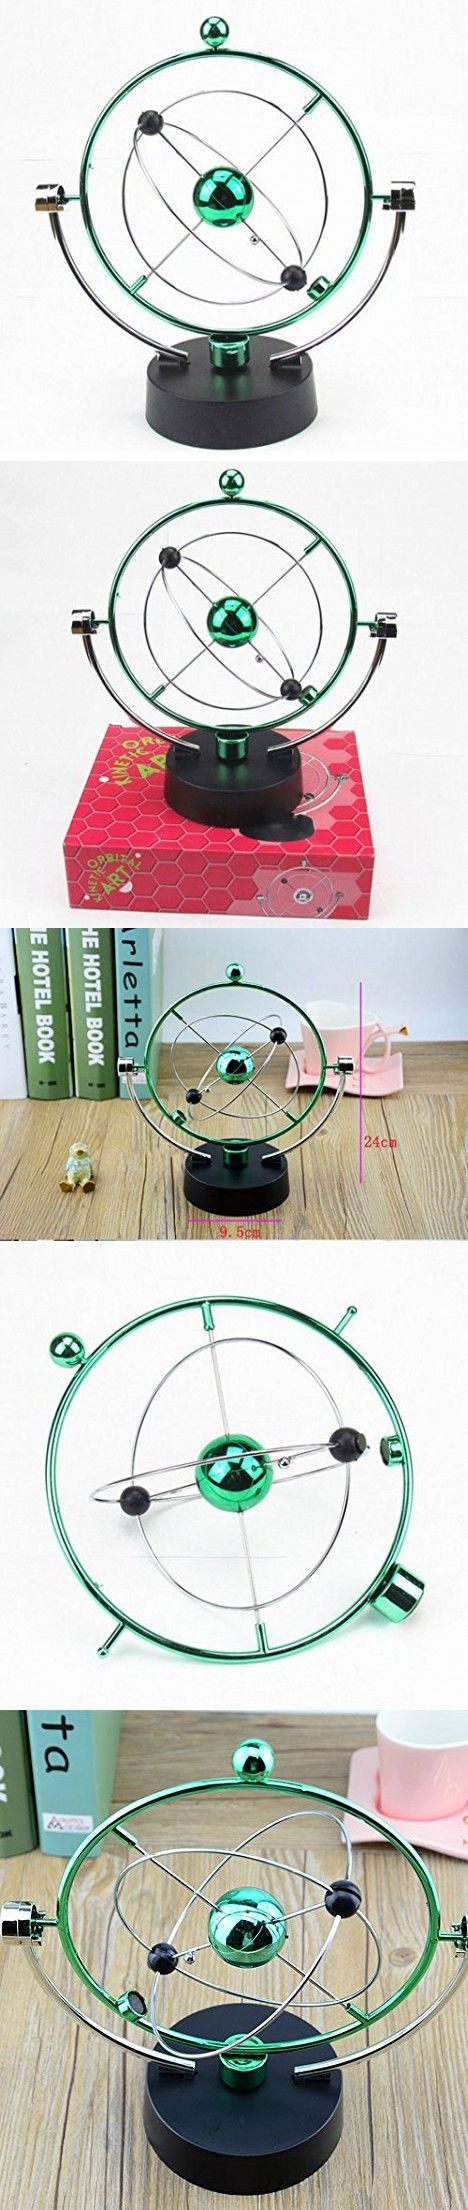 JCare Educational Science Toys Electric Wiggler Kinetic Milky Way Orbital Gadget Perpetual Motion Art Office Desk Home Decor Gizmos Kids Best Christmas New Year Gift